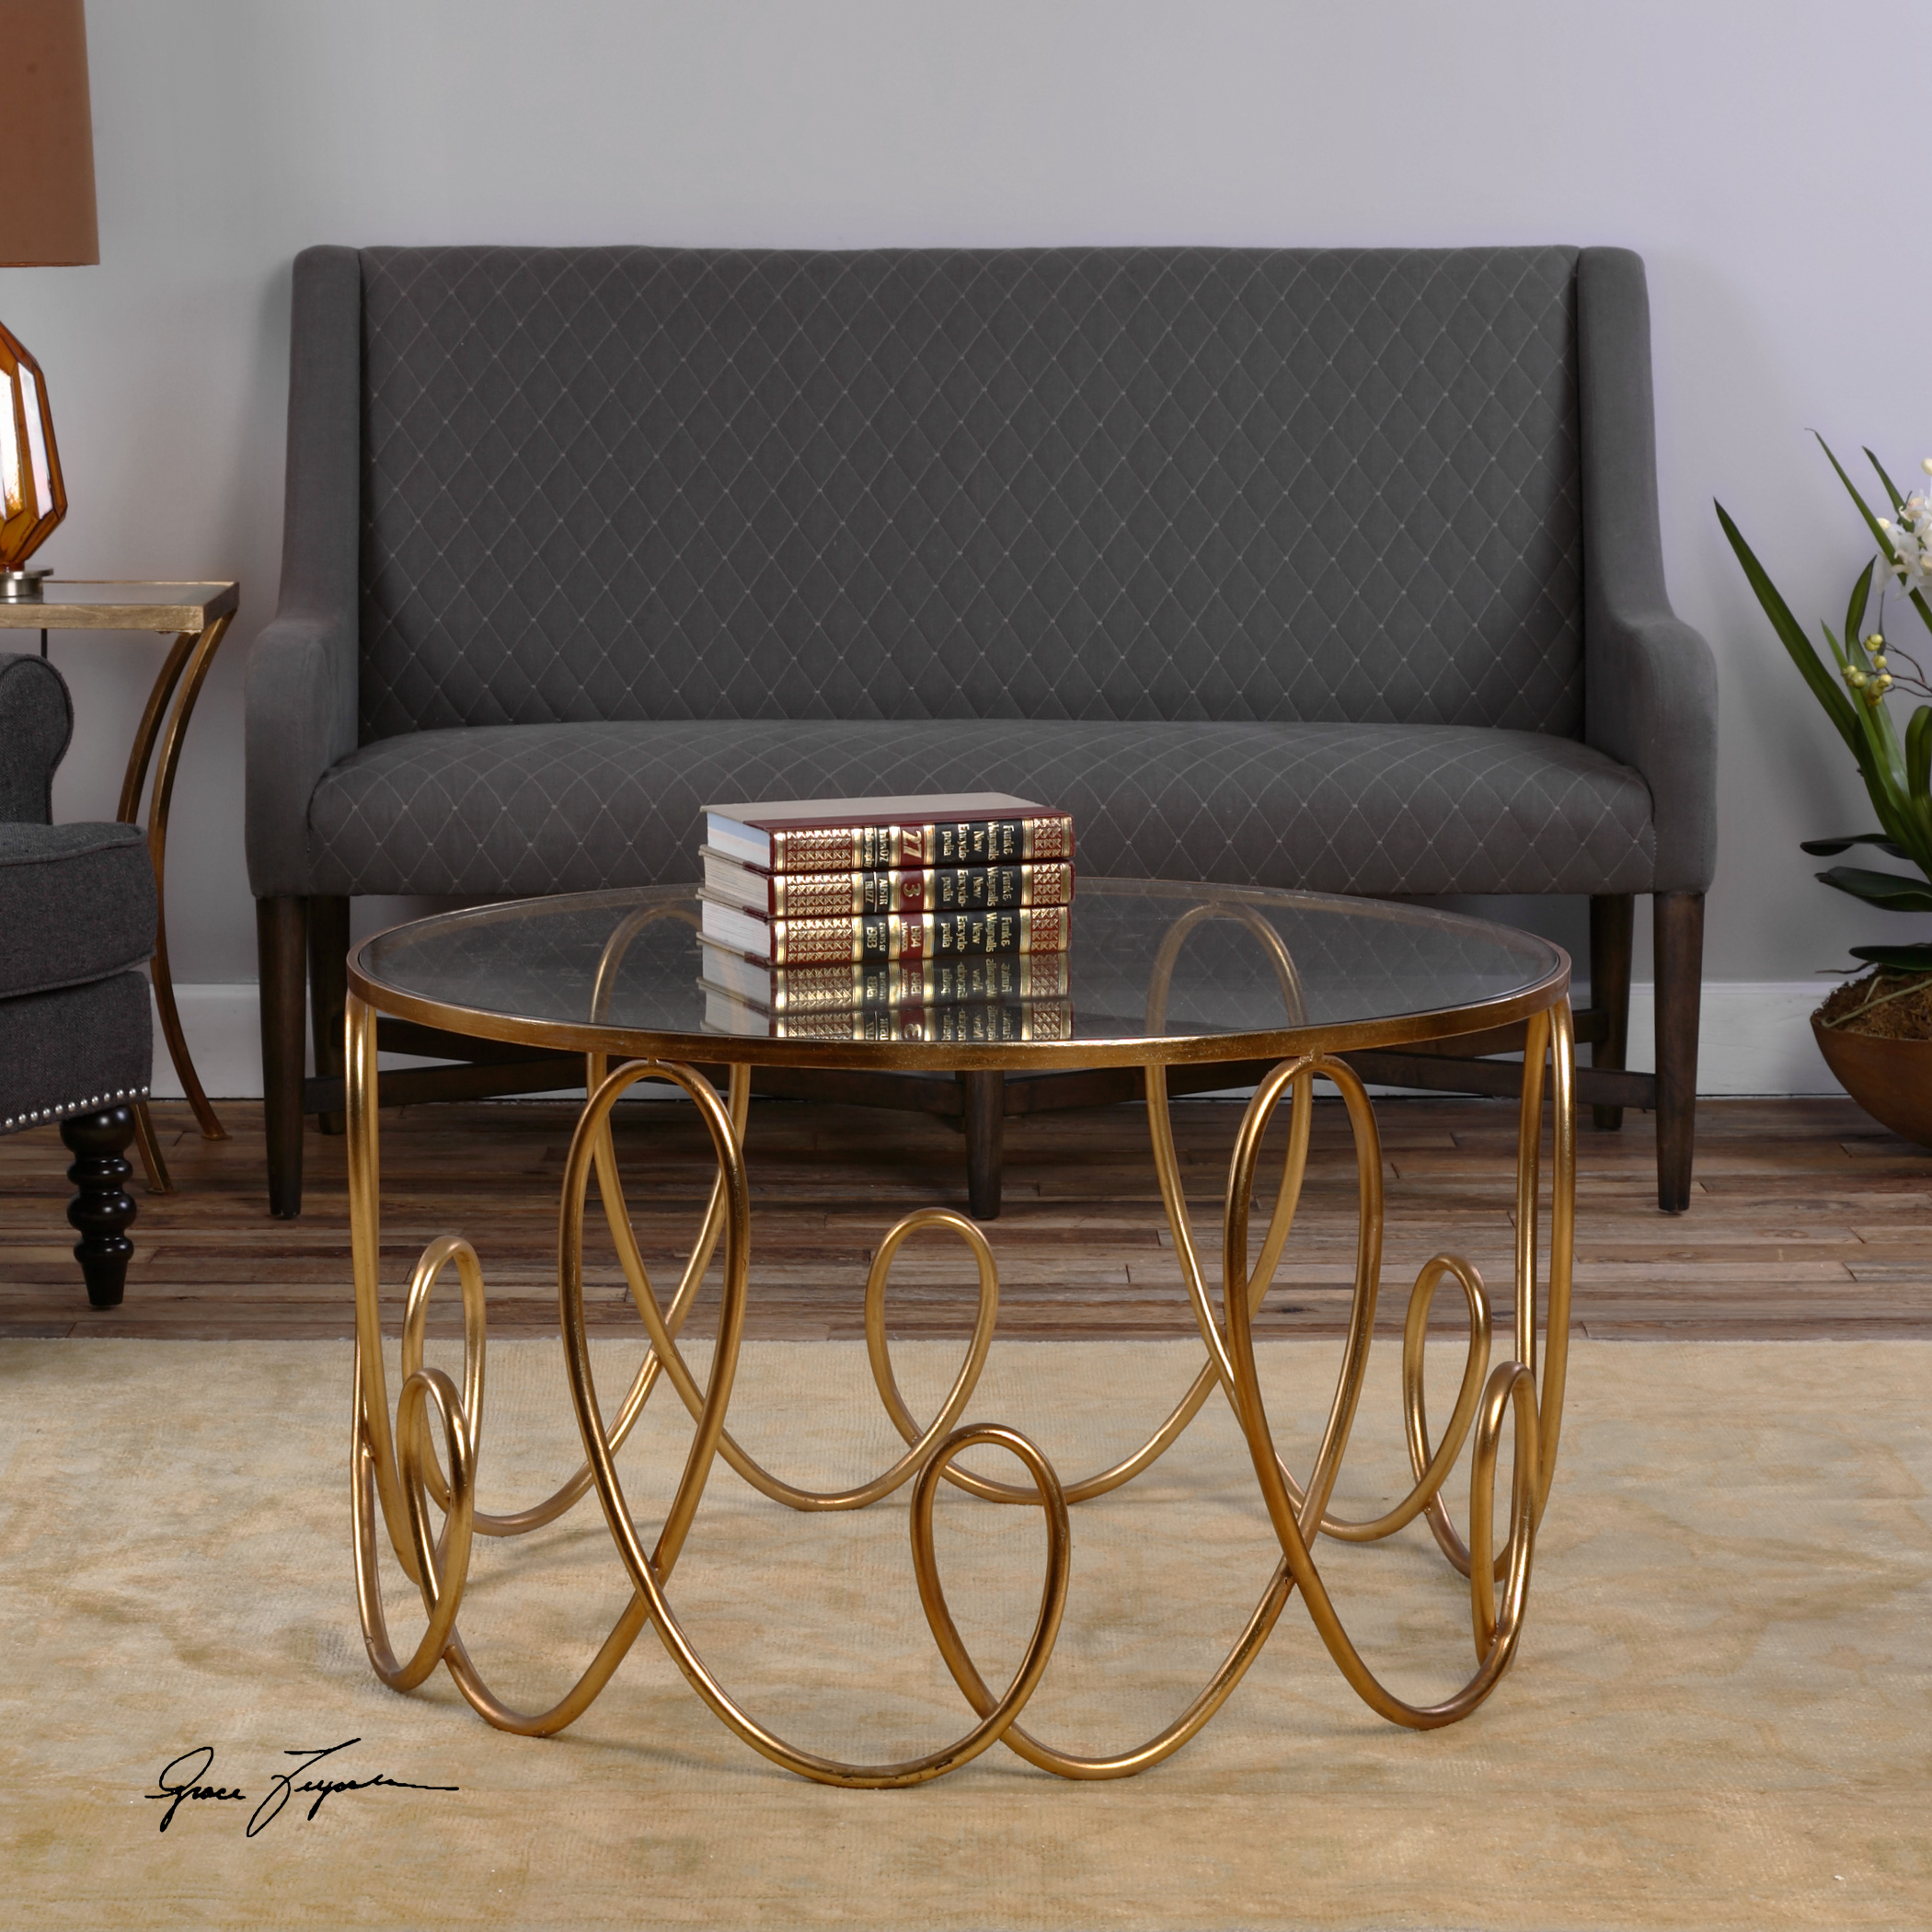 Lpd Furniture Accent White Coffee Table: Uttermost Accent Furniture 24620 Brielle Gold Coffee Table